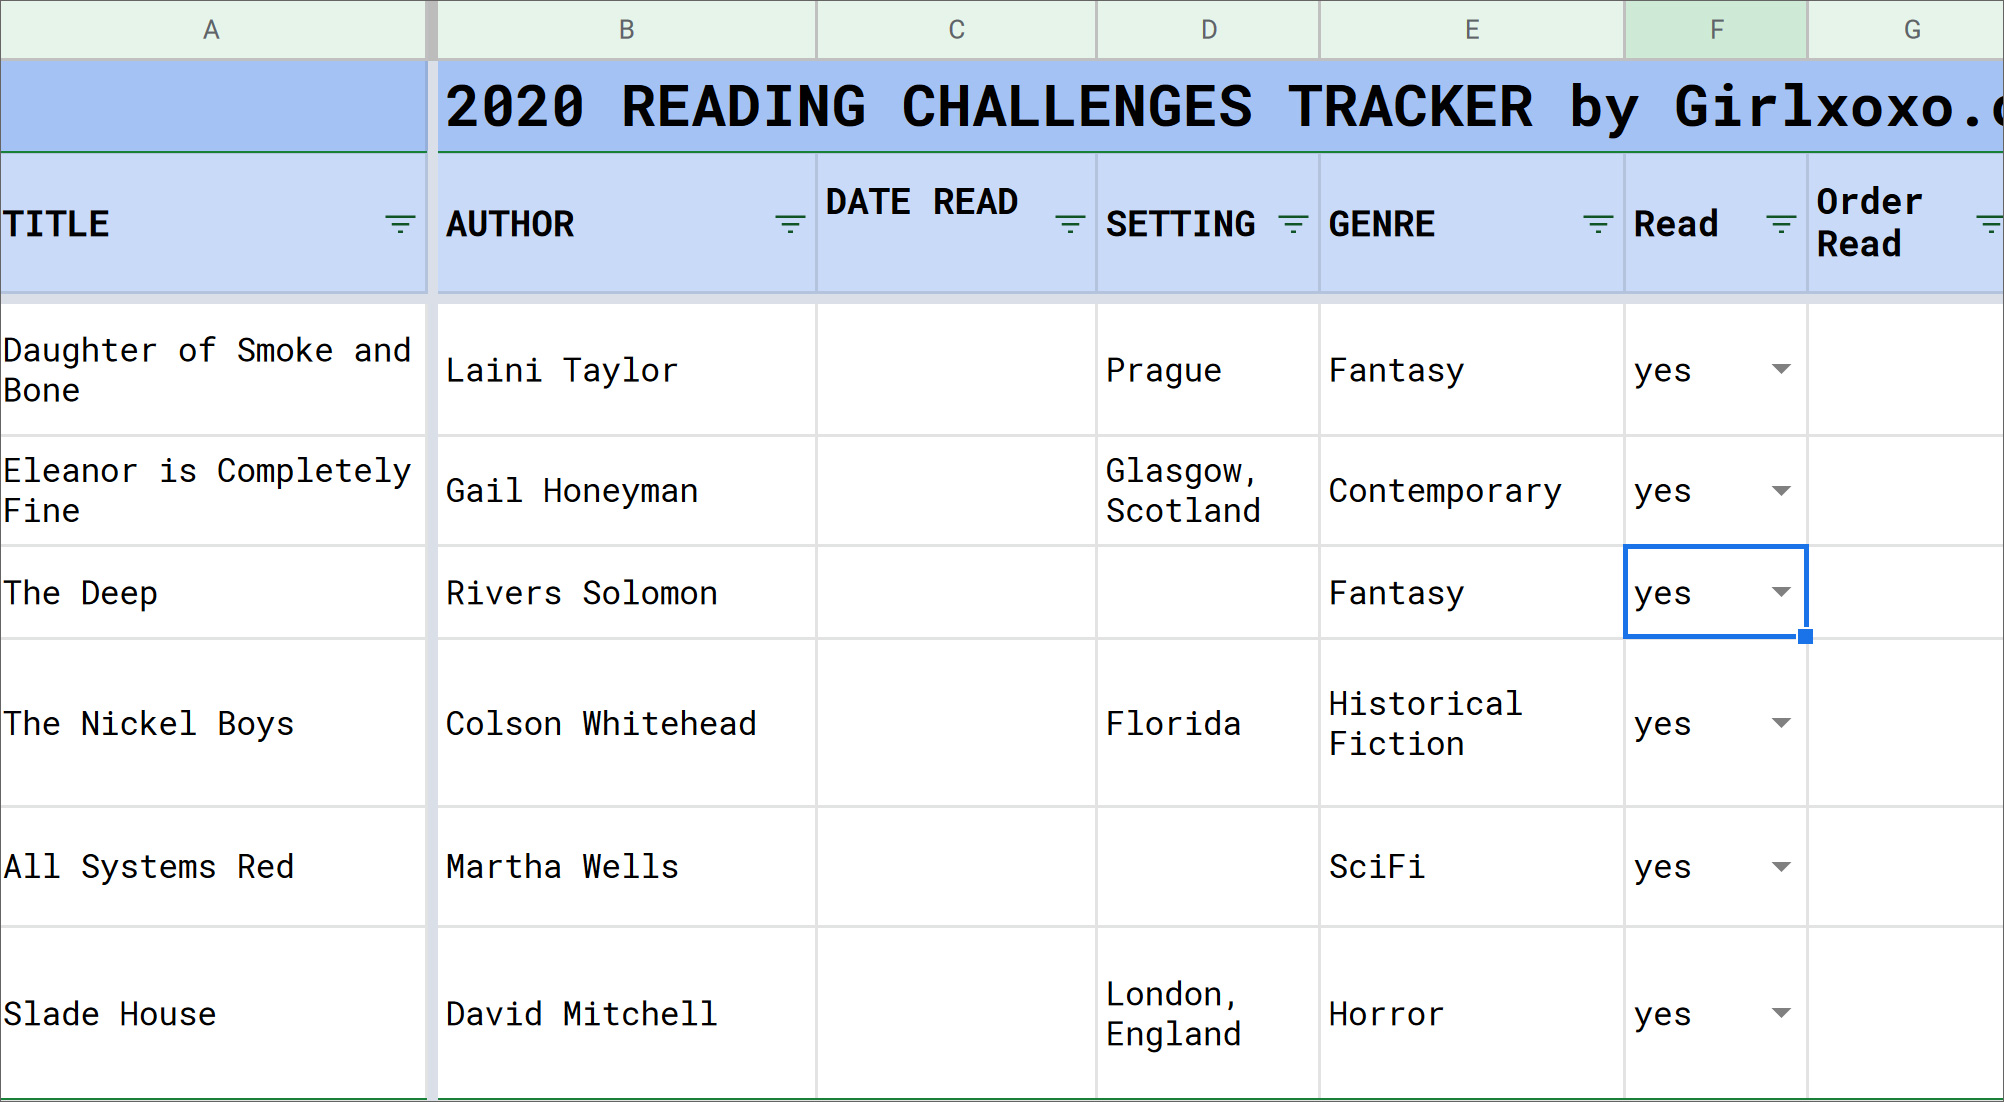 reading tracker challenges